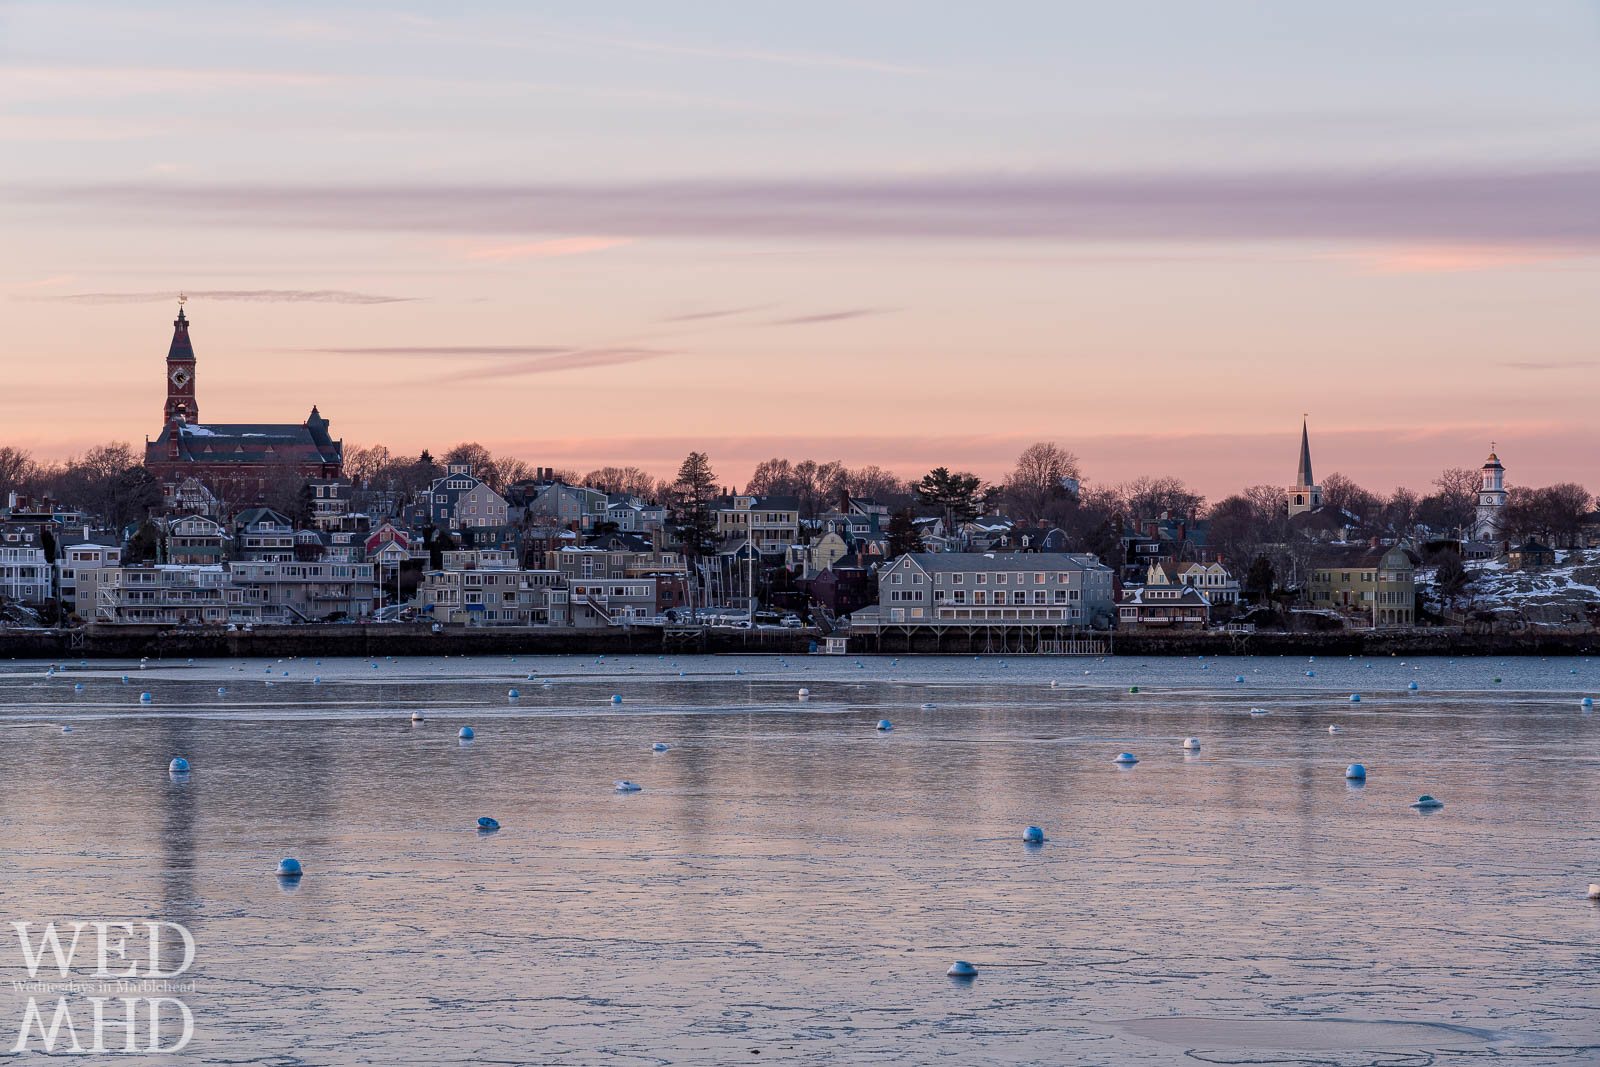 A nearly frozen harbor reflects a beautiful sunset over Marblehead's skyline the night before a blizzard exploded over town